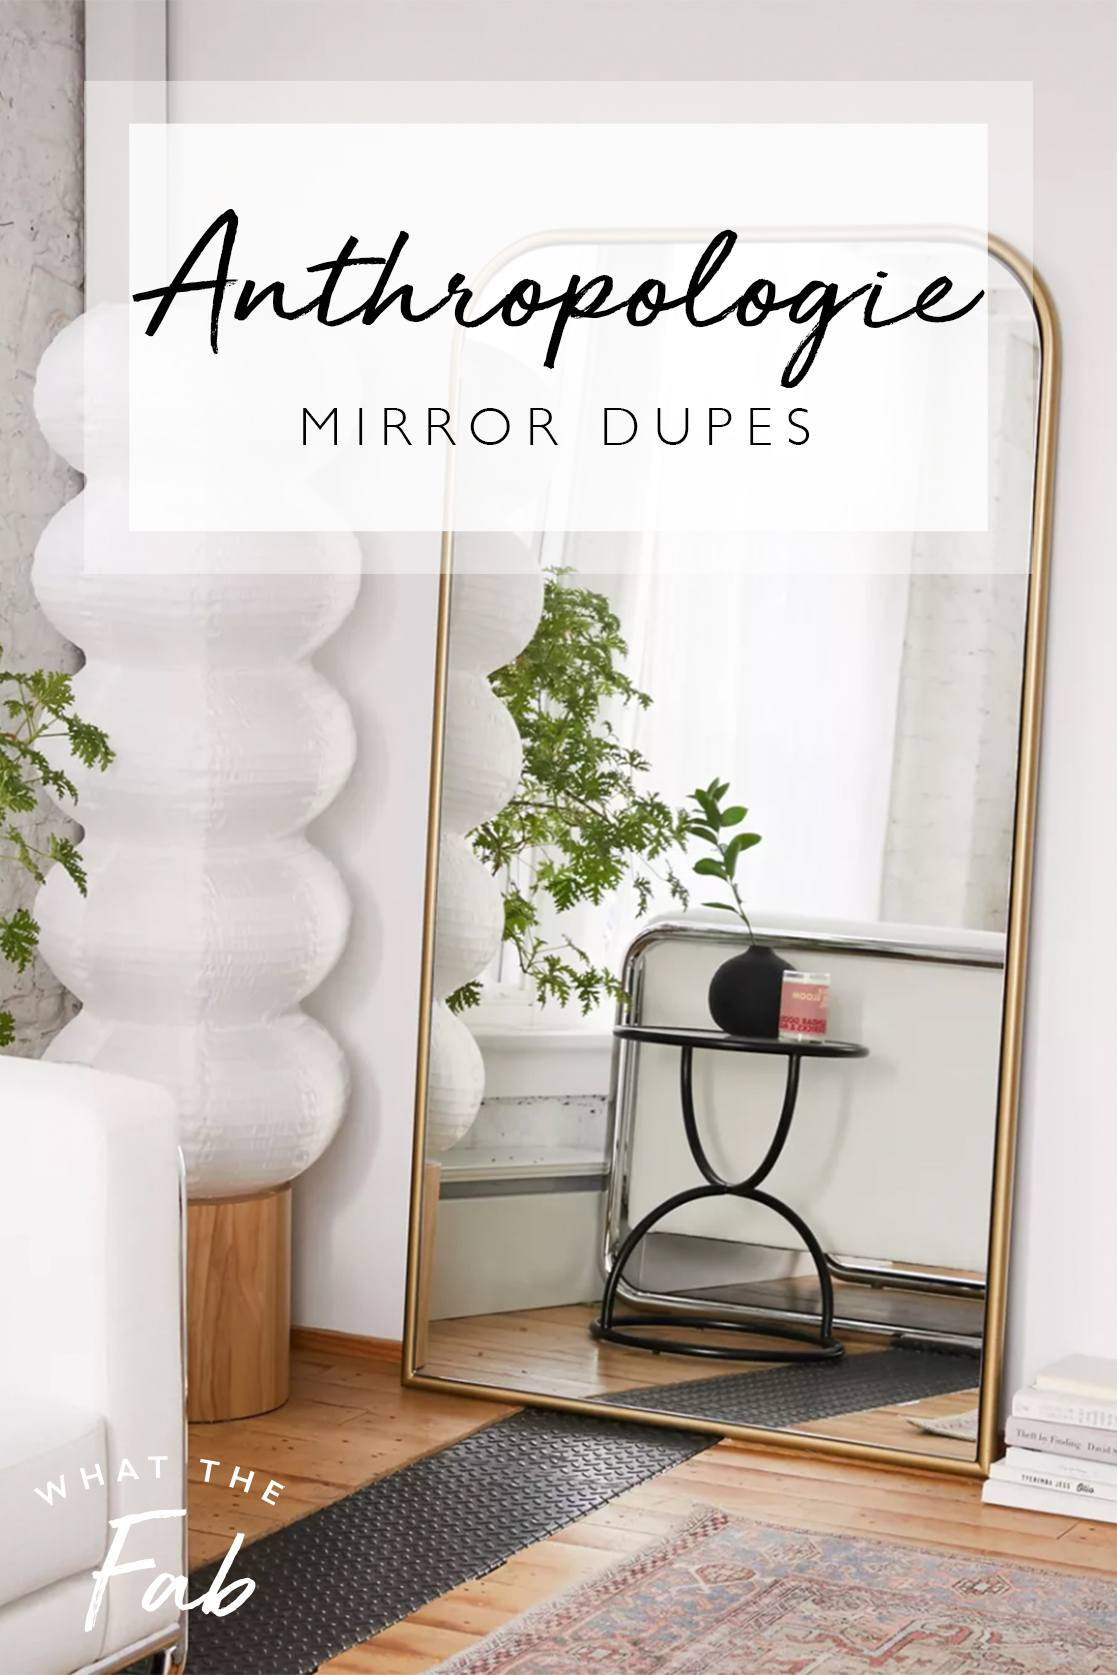 10 Anthropologie mirror dupes, by Blogger What The Fab